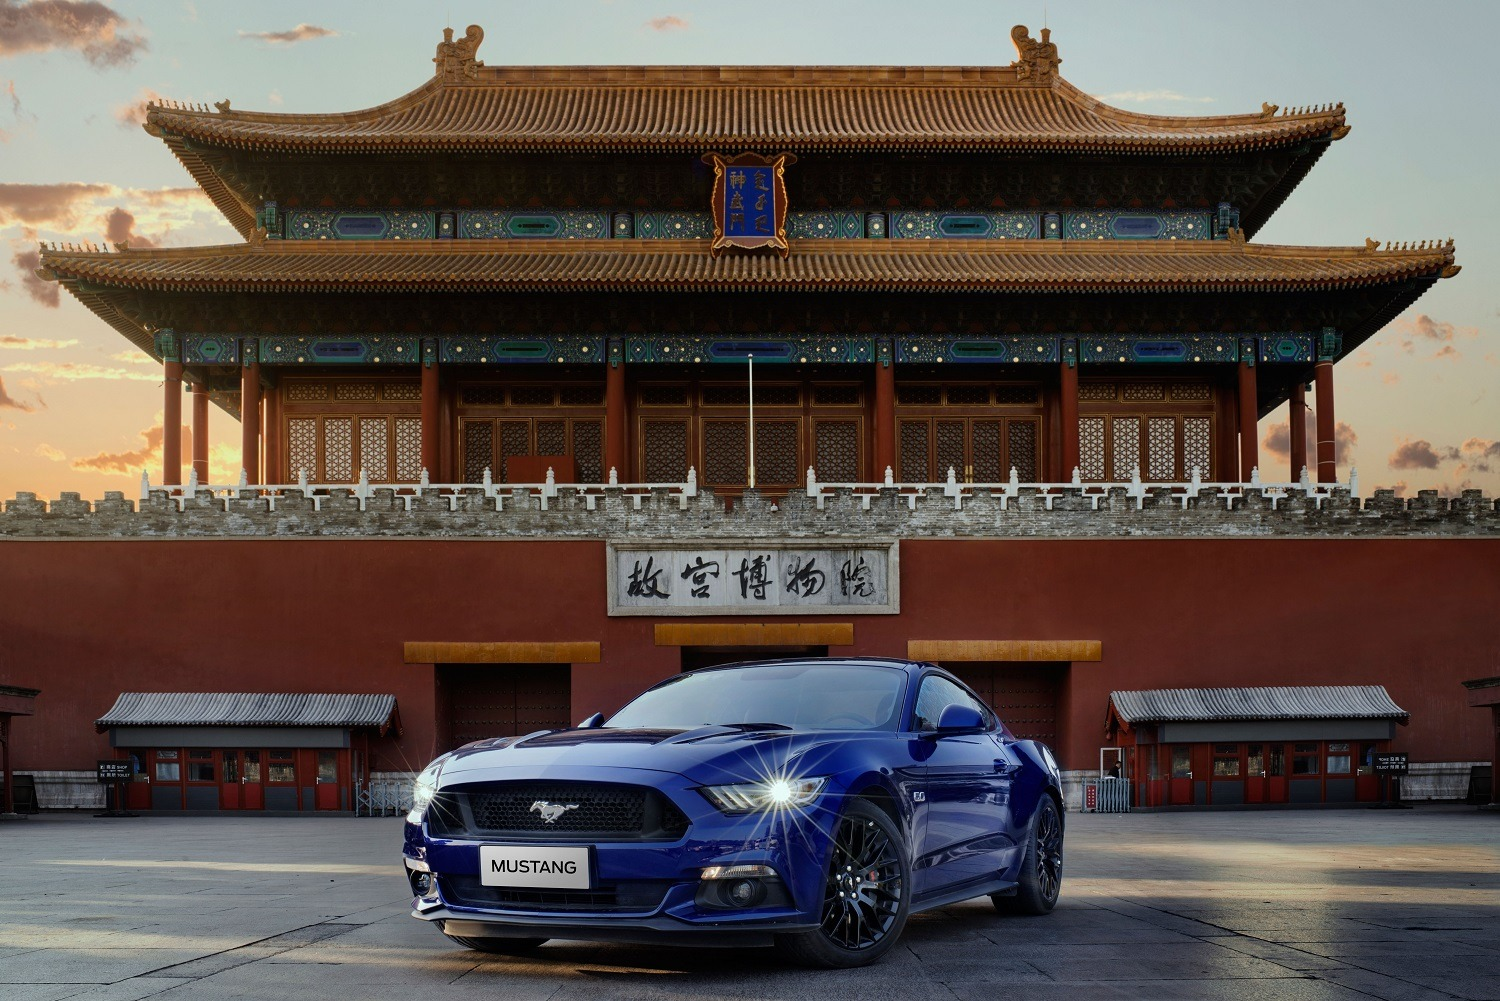 In fourth-quarter 2015, Mustang was the best-selling sports coupe in China as exports made their way to dealerships in volume, according to IHS registration data. Buyers in China favor EcoBoost versions.